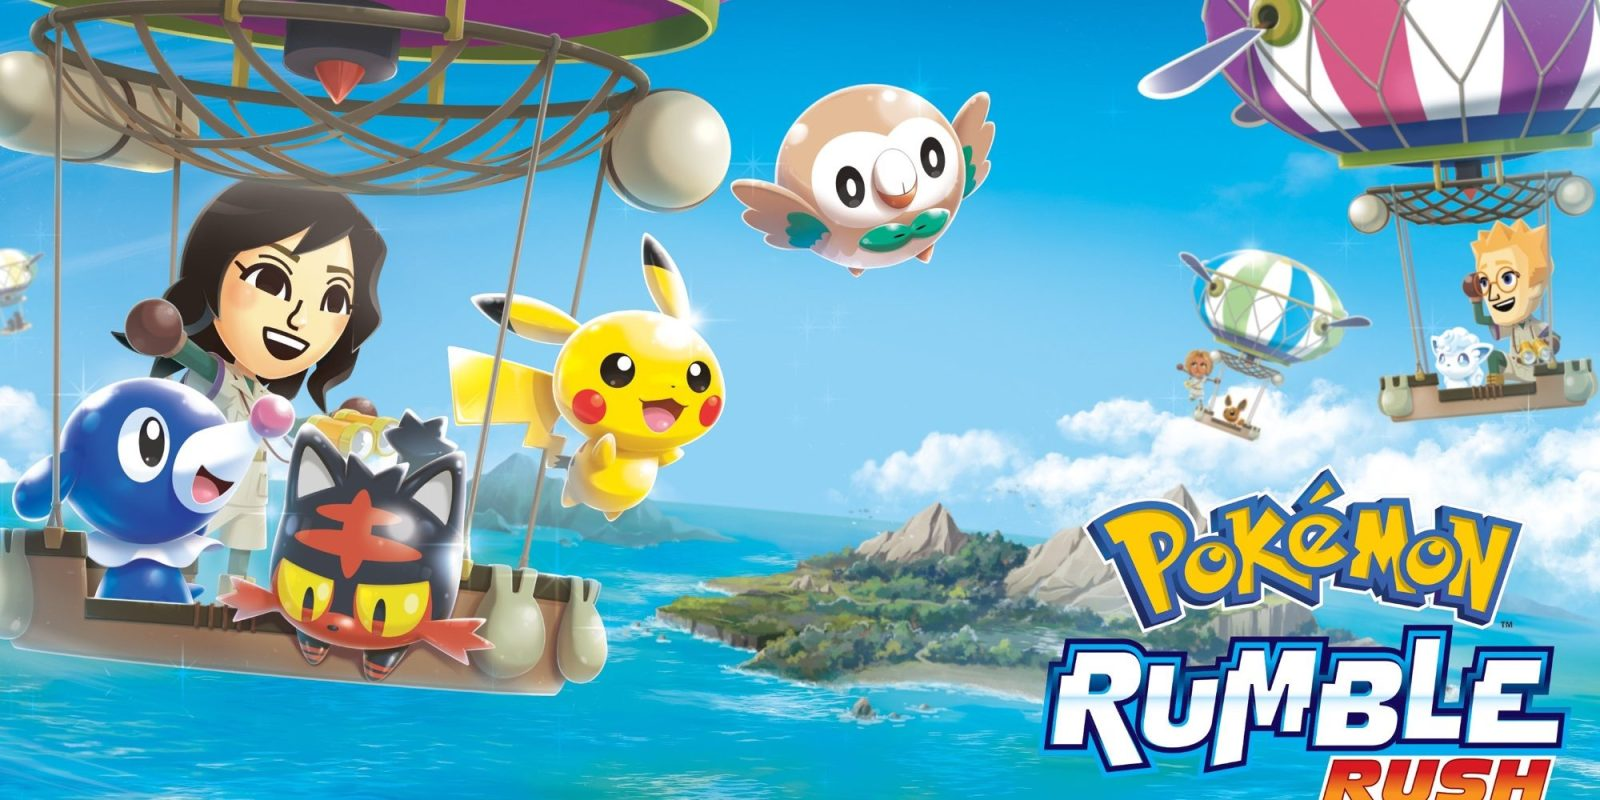 New Pokémon Rumble Rush mobile game is headed to iOS and Android